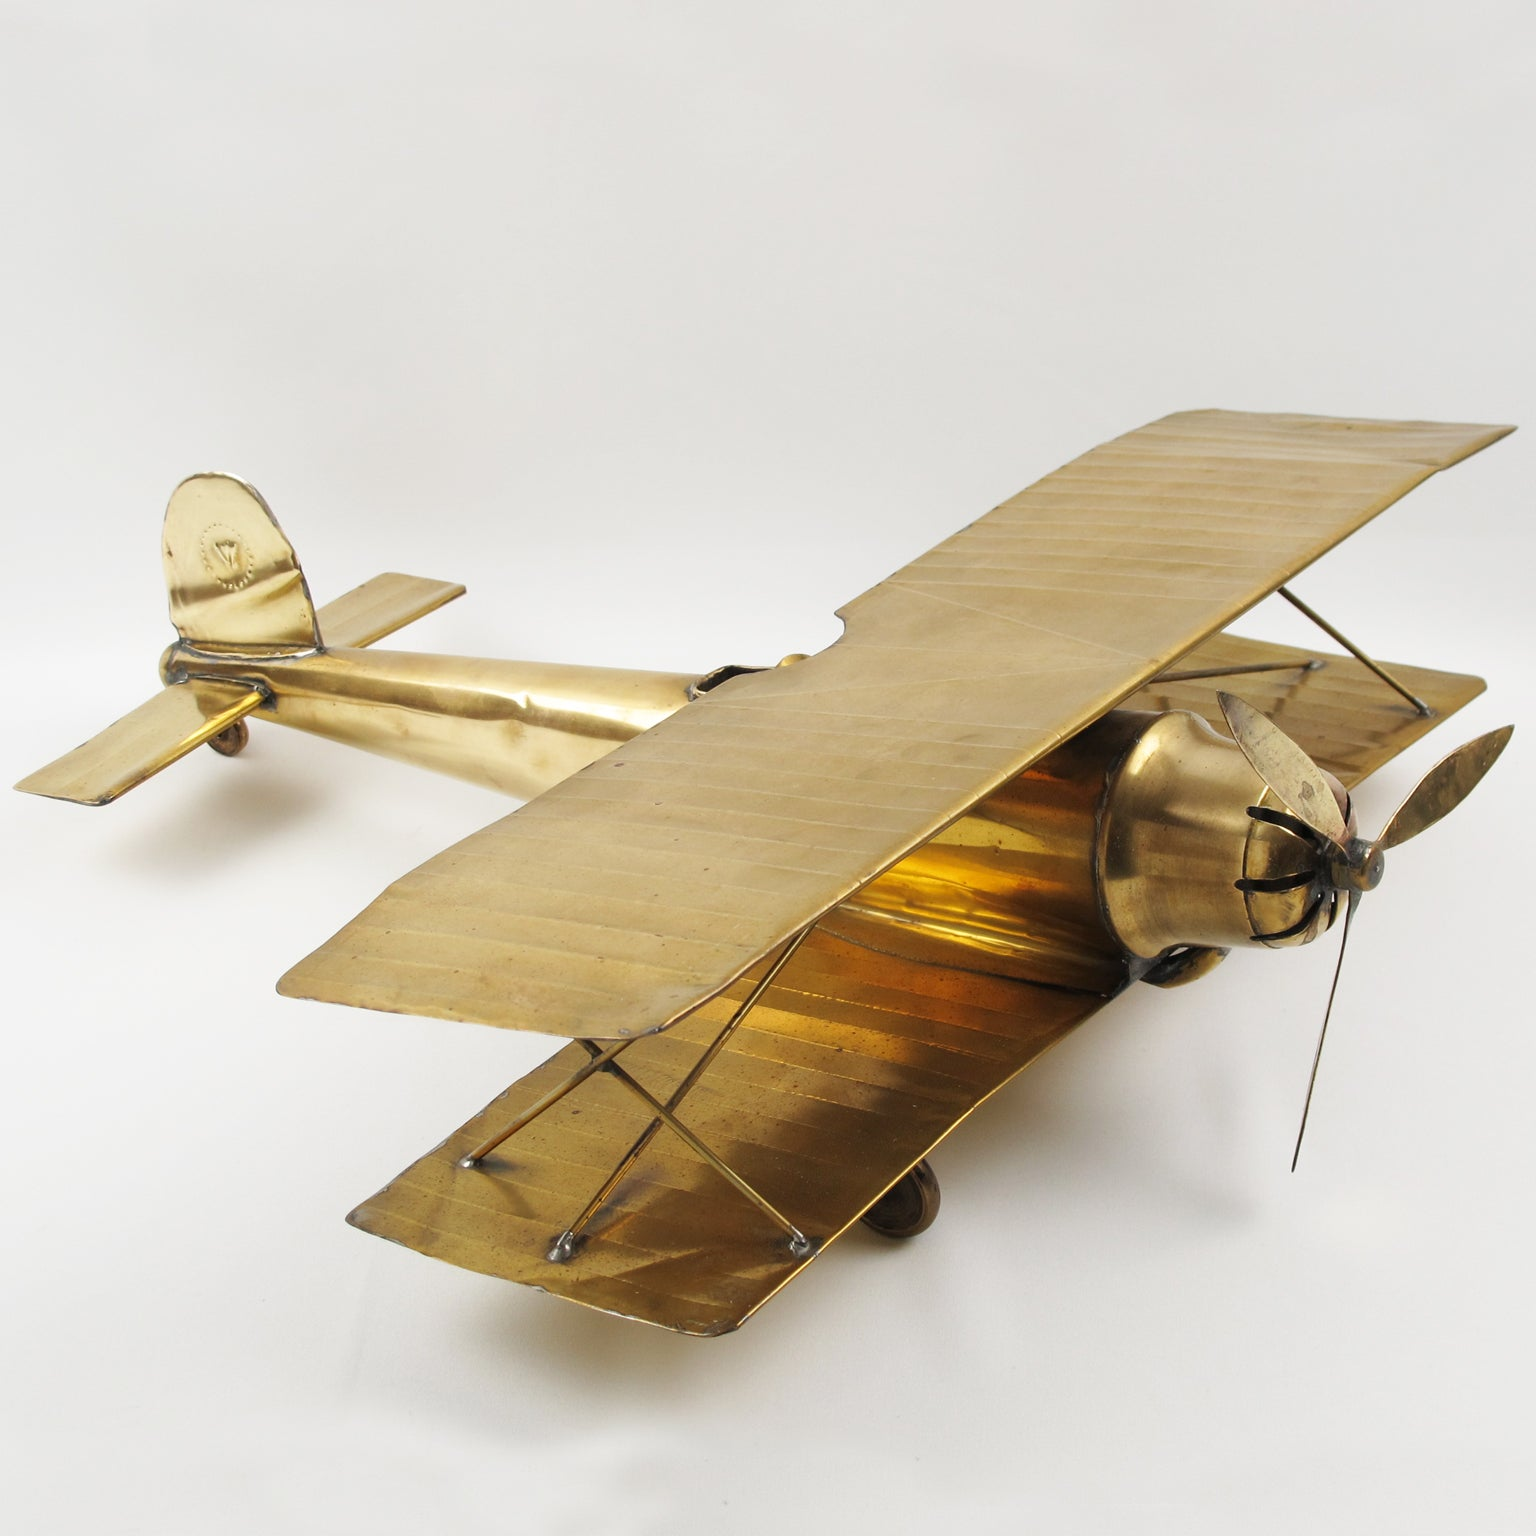 Large World War I Biplane Brass Airplane Model For Sale at 1stdibs